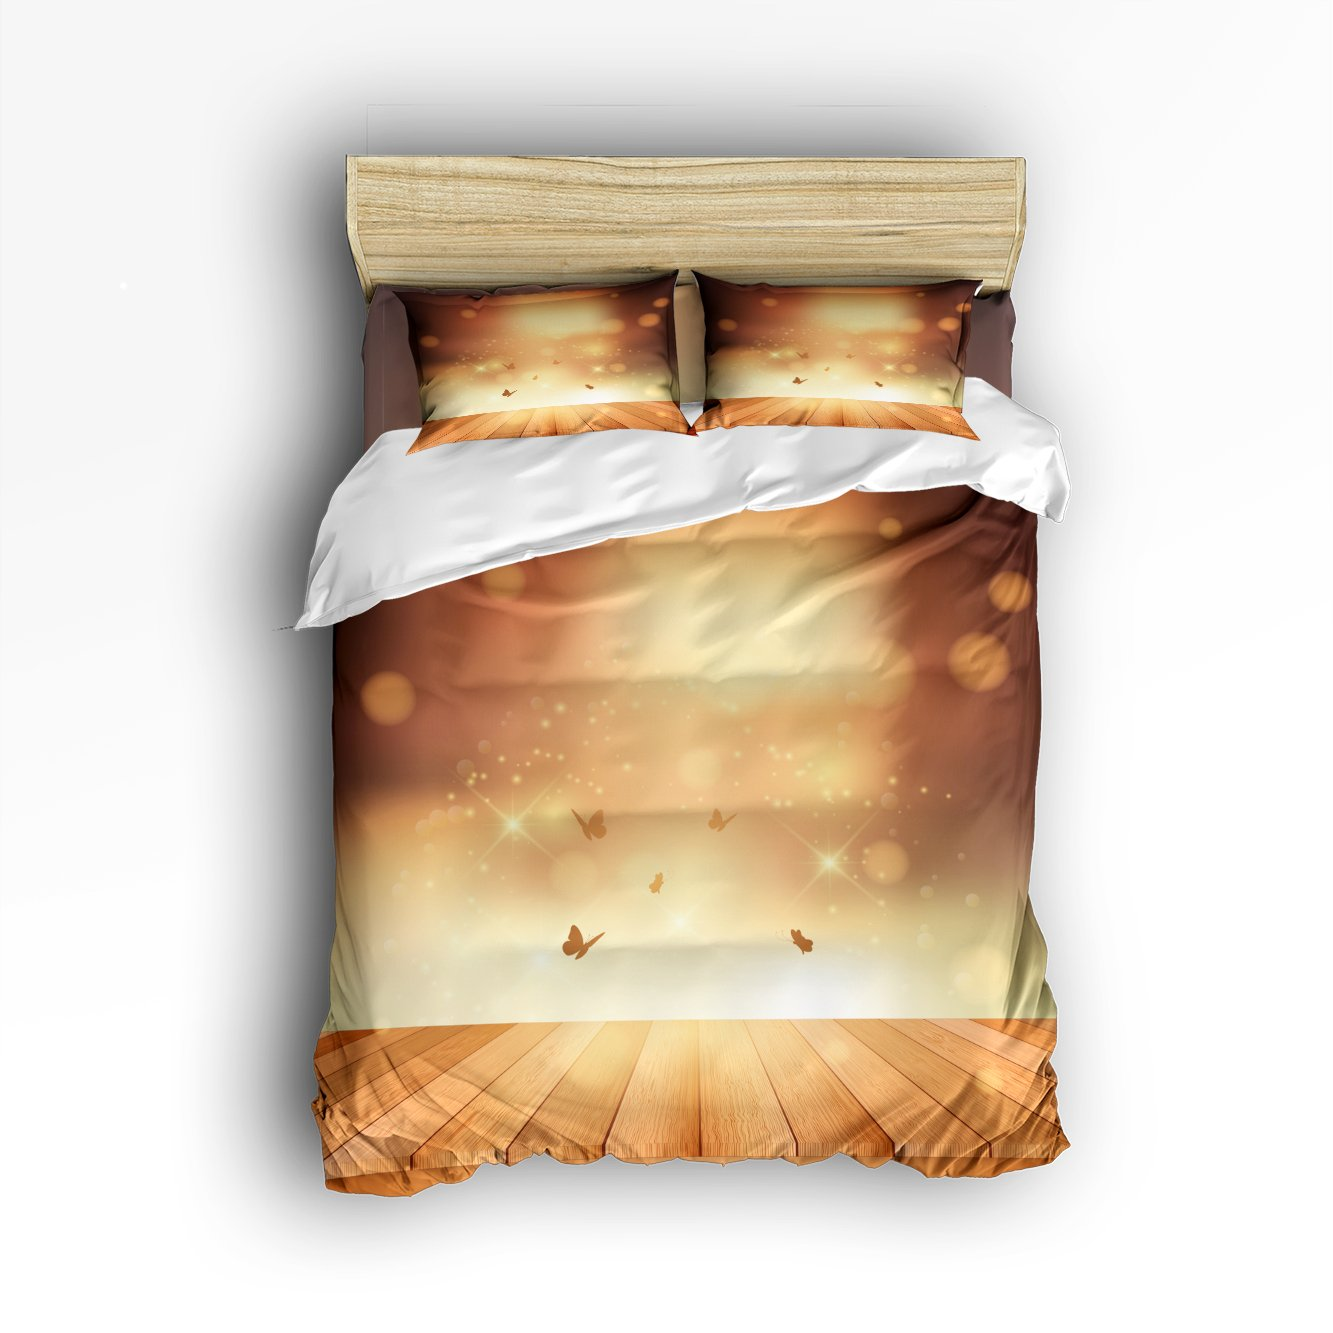 Libaoge 4 Piece Bed Sheets Set, Butterflies on Rustic Old Barn Wood with Shiny Sunlight Print, 1 Flat Sheet 1 Duvet Cover and 2 Pillow Cases